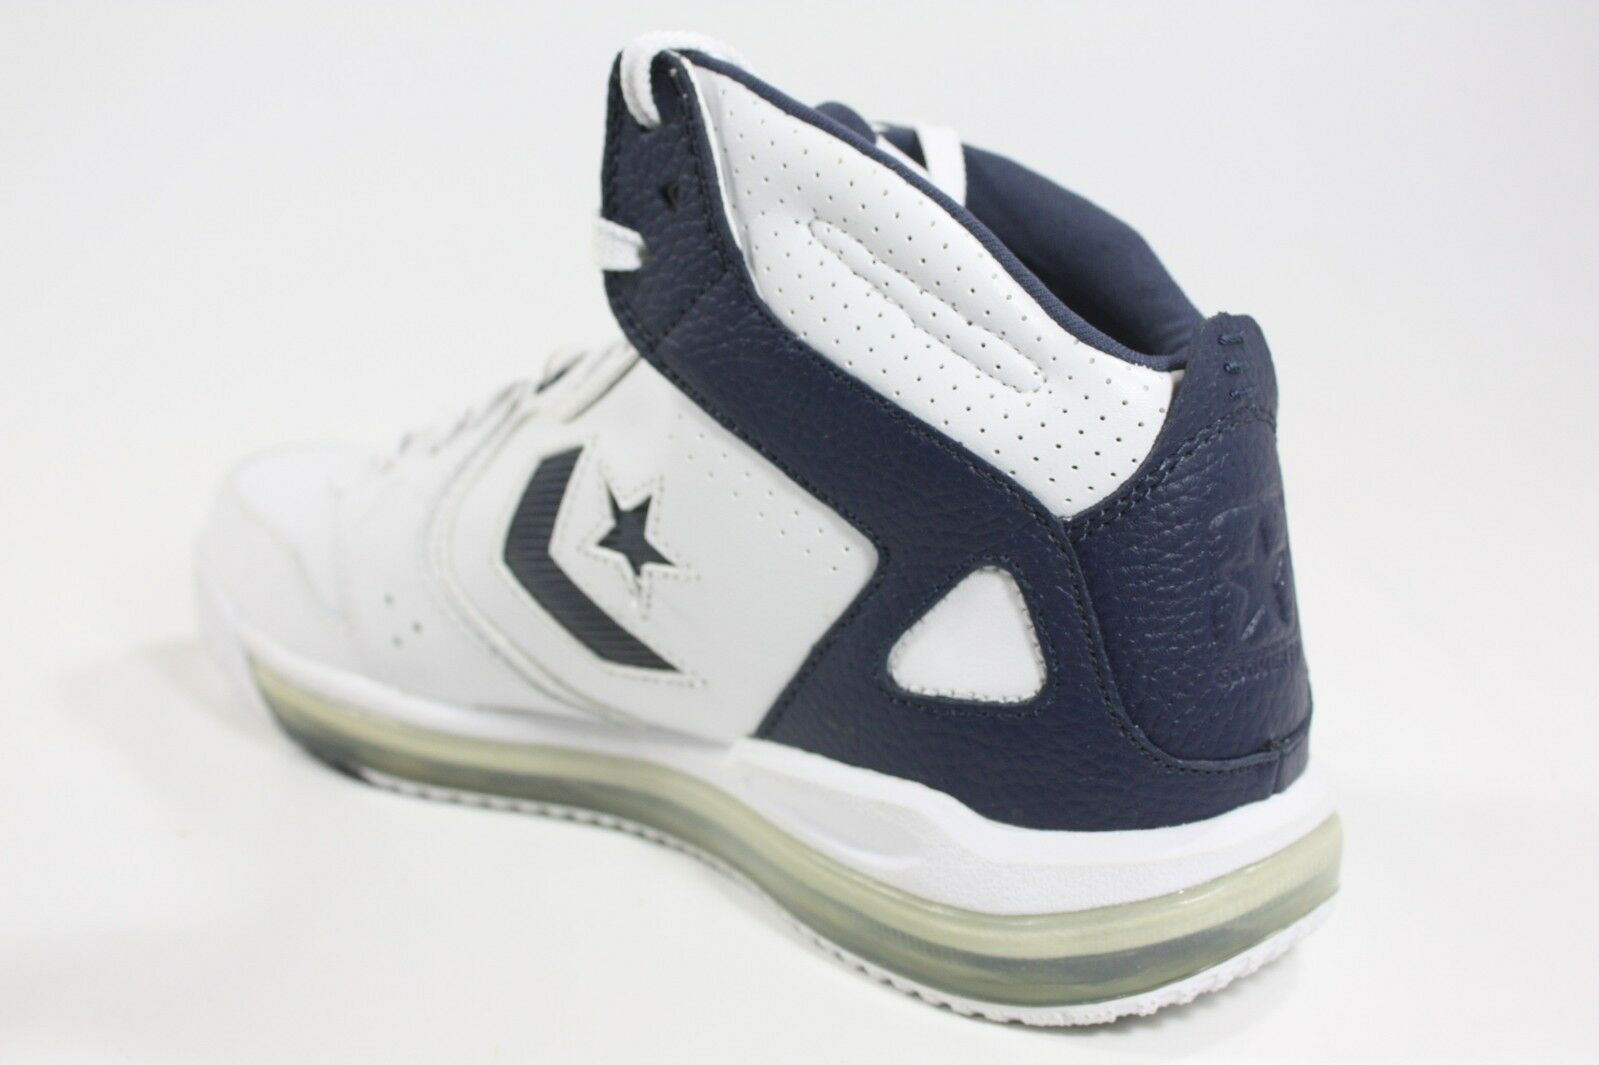 NEW/RARE Converse All Star Sicks Mid - - Mid White/Navy (117011) f13776